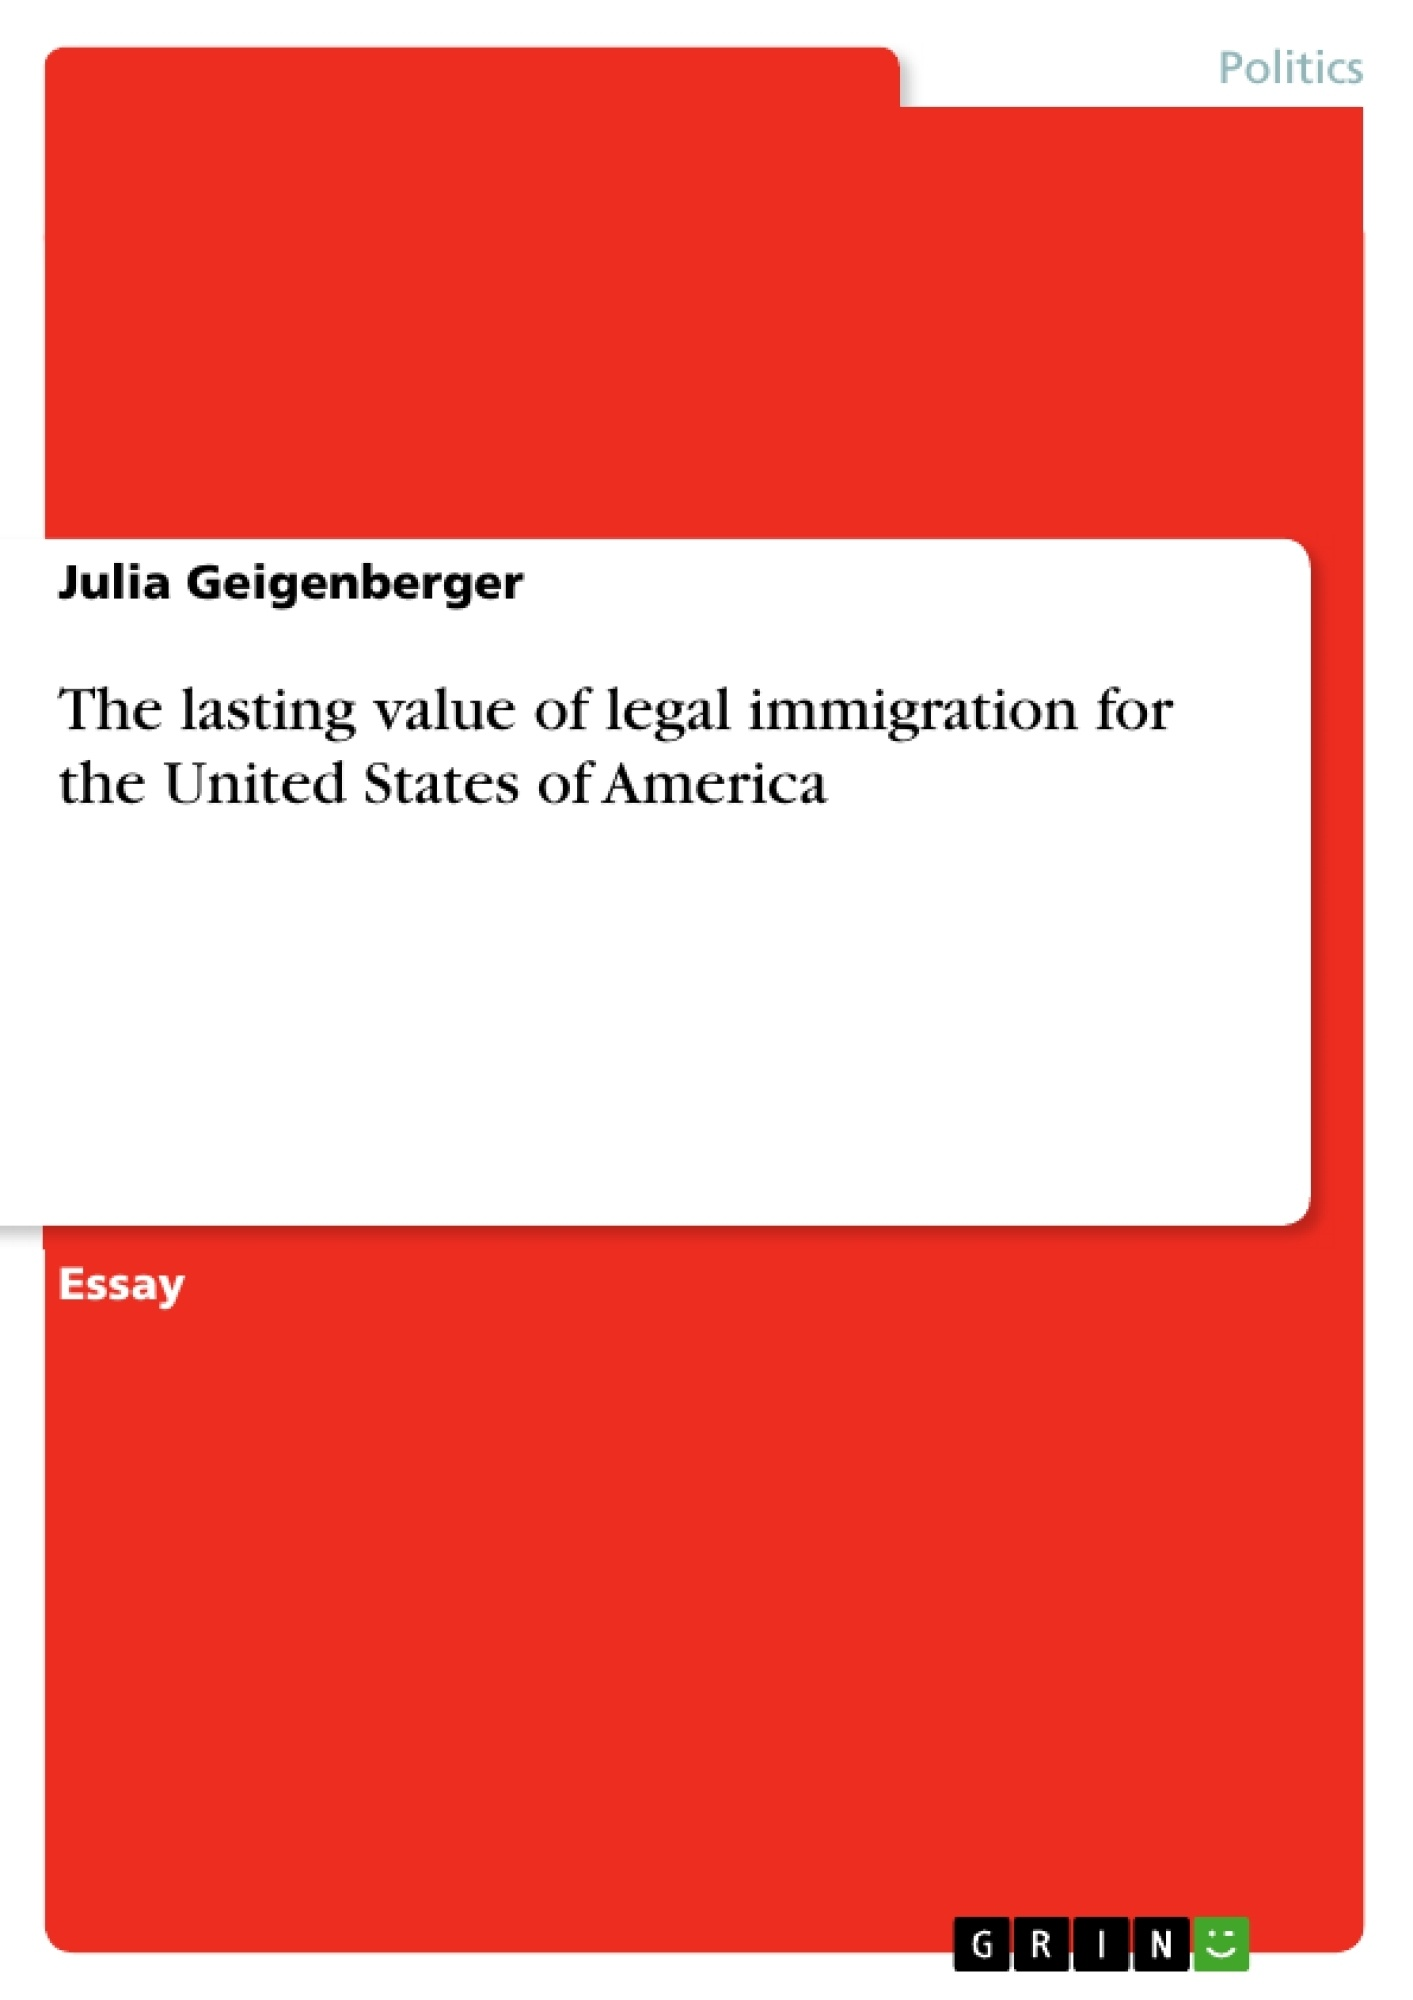 Title:  The lasting value of legal immigration for the United States of America